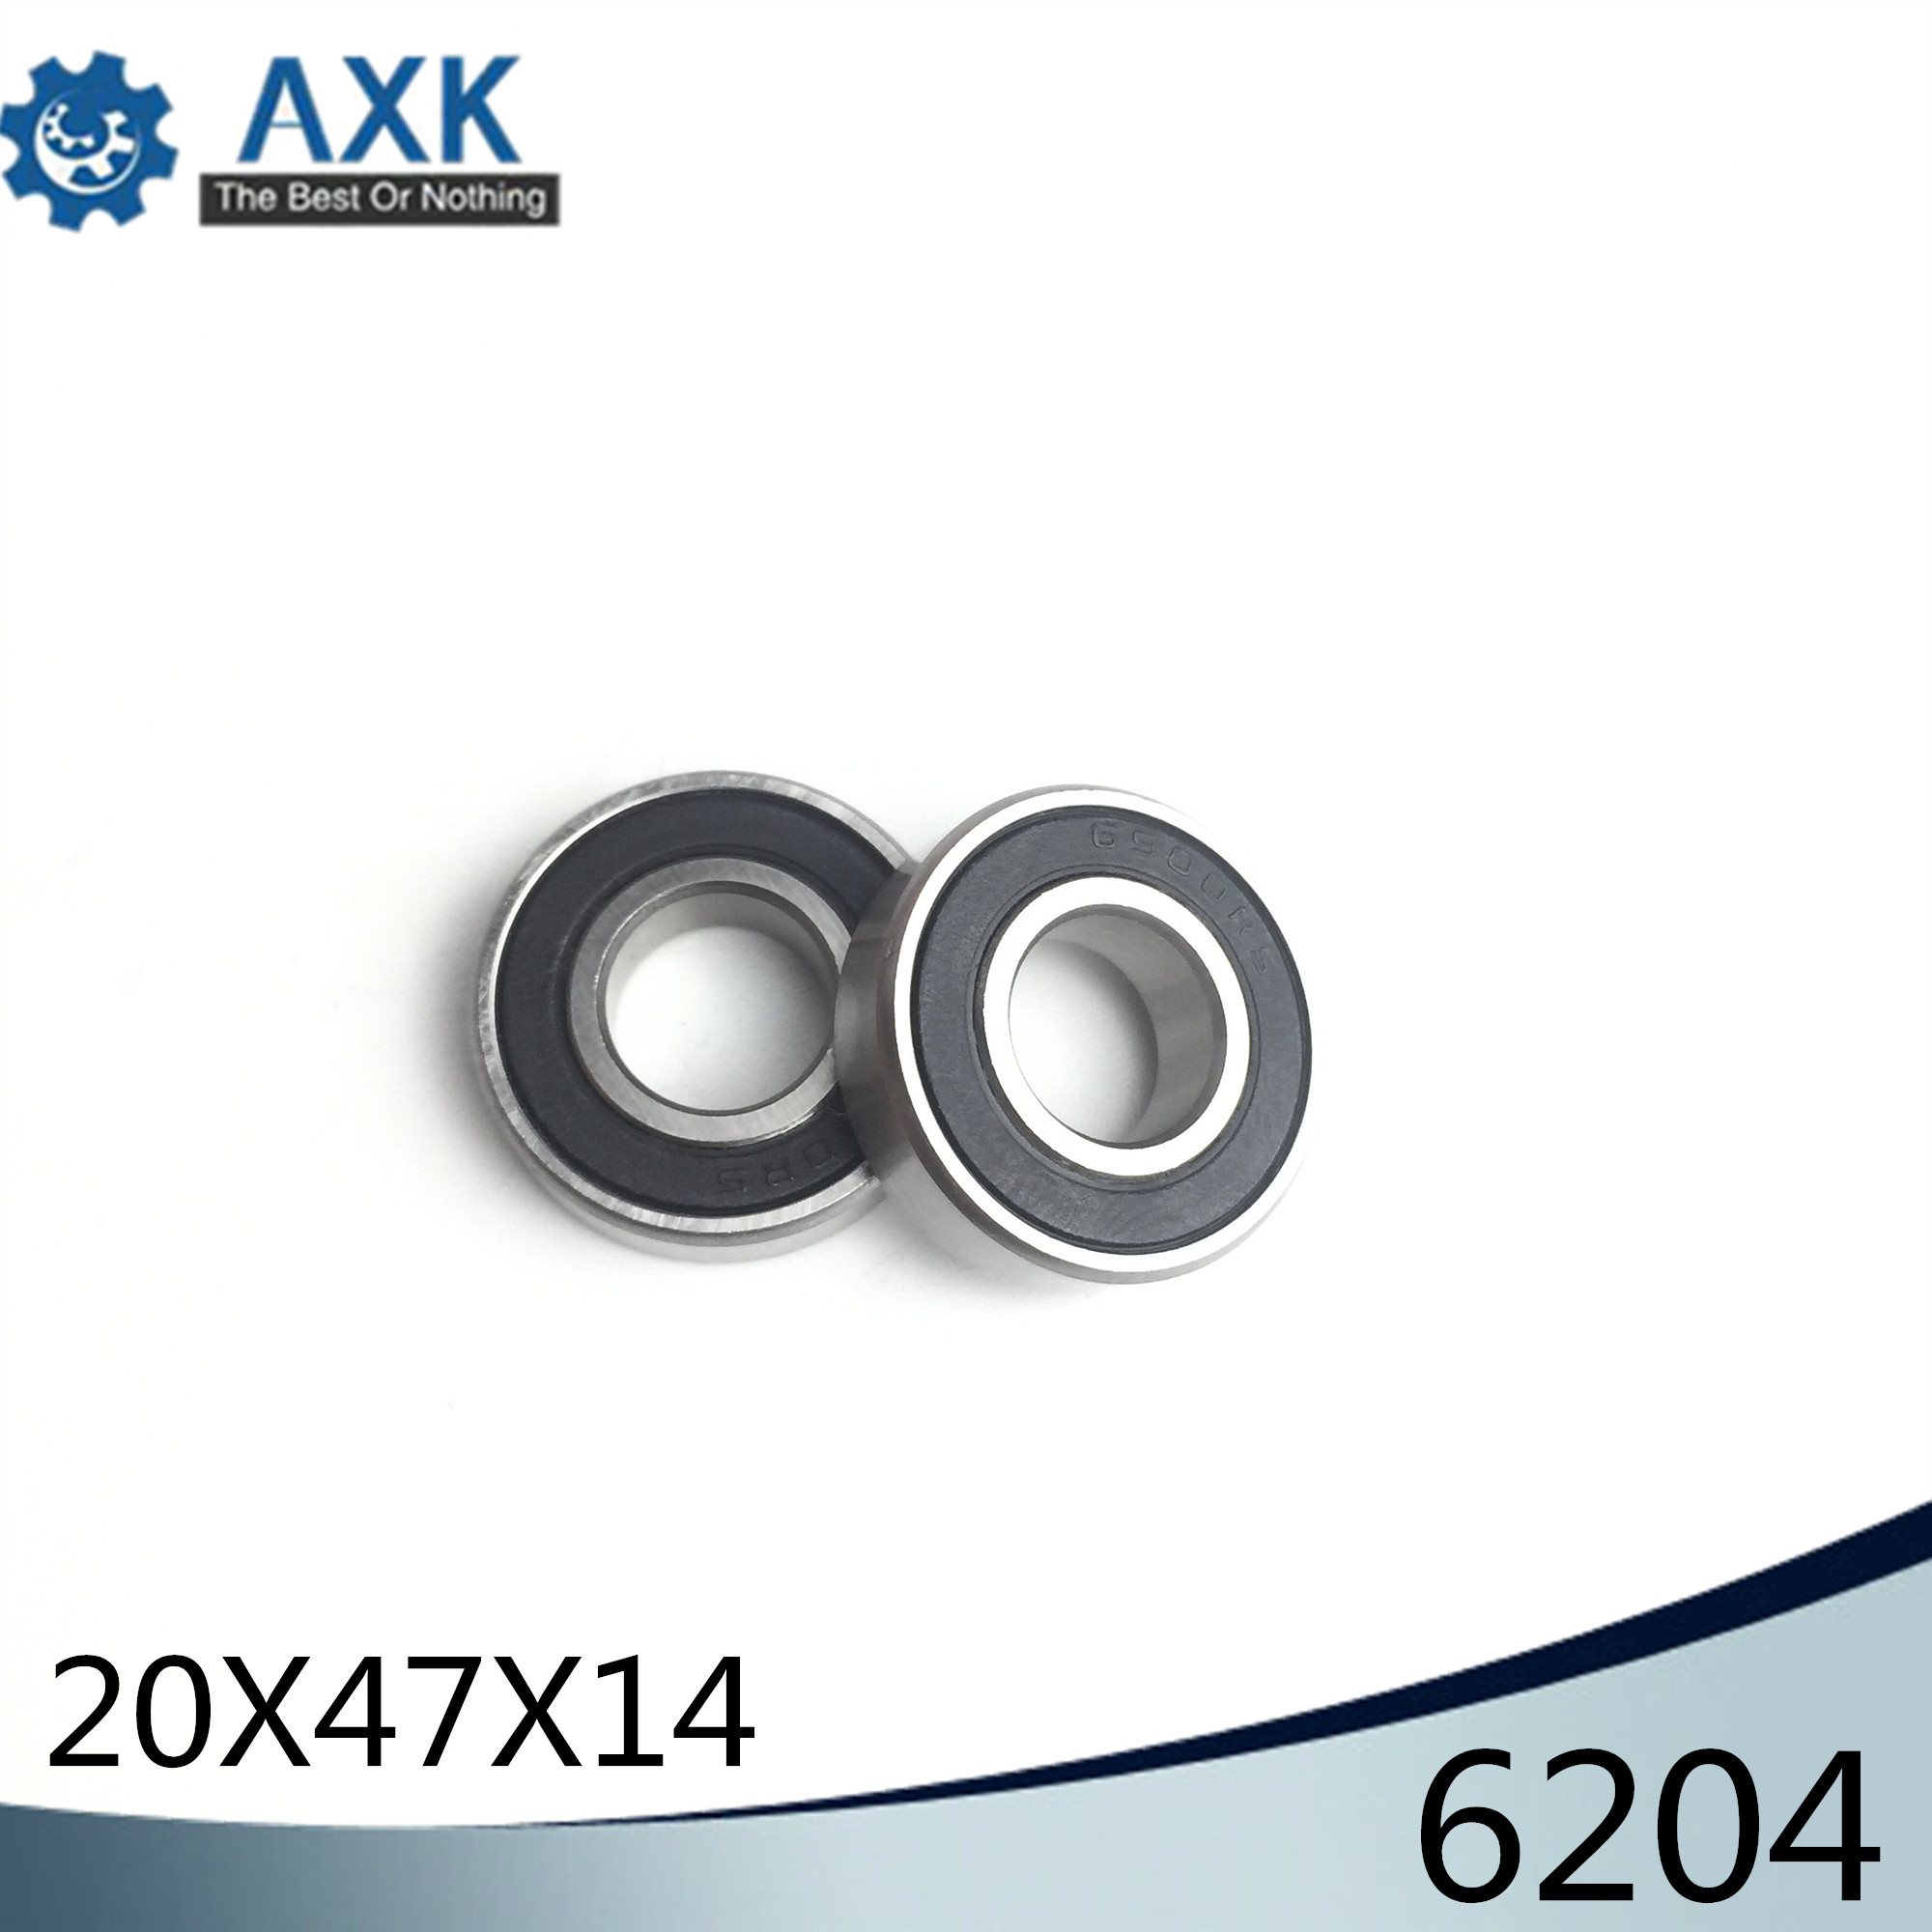 6204 Hybrid Ceramic Bearing 20*47*14 mm ABEC-1 ( 1 PC) Industry Motor Spindle 6204HC Hybrids Si3N4 Ball Bearings 3NC 6204RS6204 Hybrid Ceramic Bearing 20*47*14 mm ABEC-1 ( 1 PC) Industry Motor Spindle 6204HC Hybrids Si3N4 Ball Bearings 3NC 6204RS